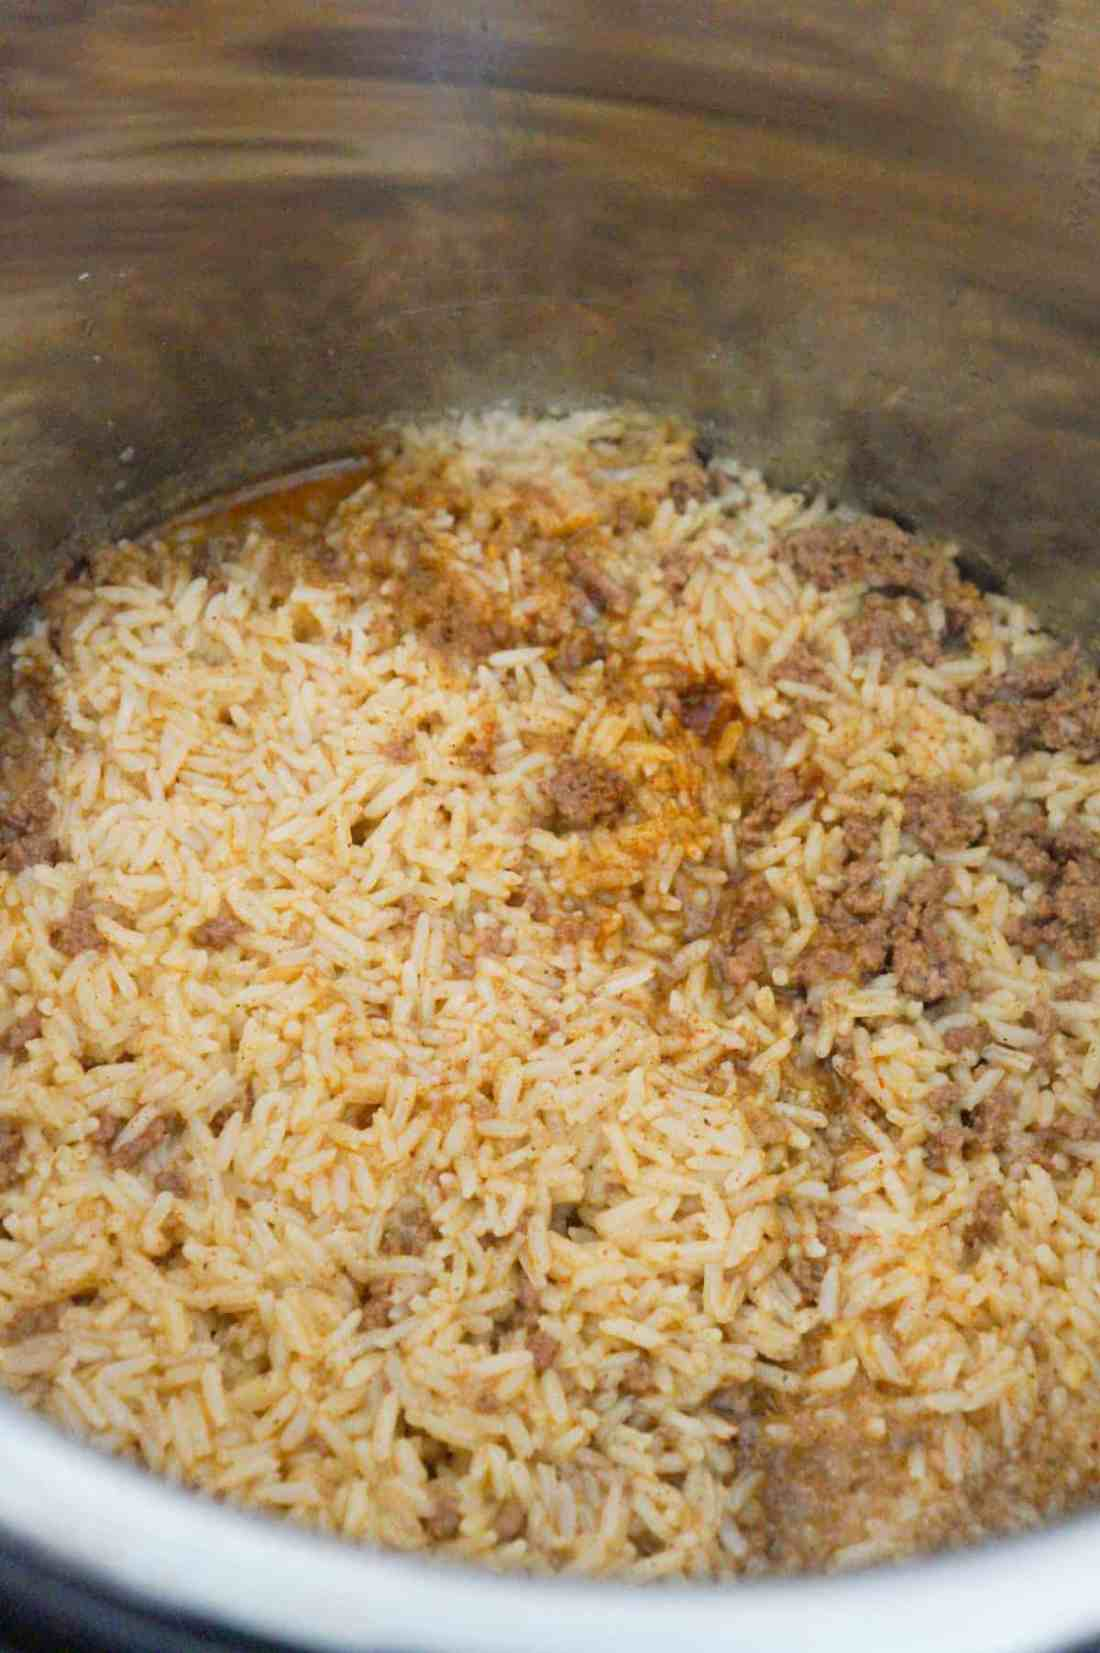 ground beef and rice in an Instant Pot after cooking